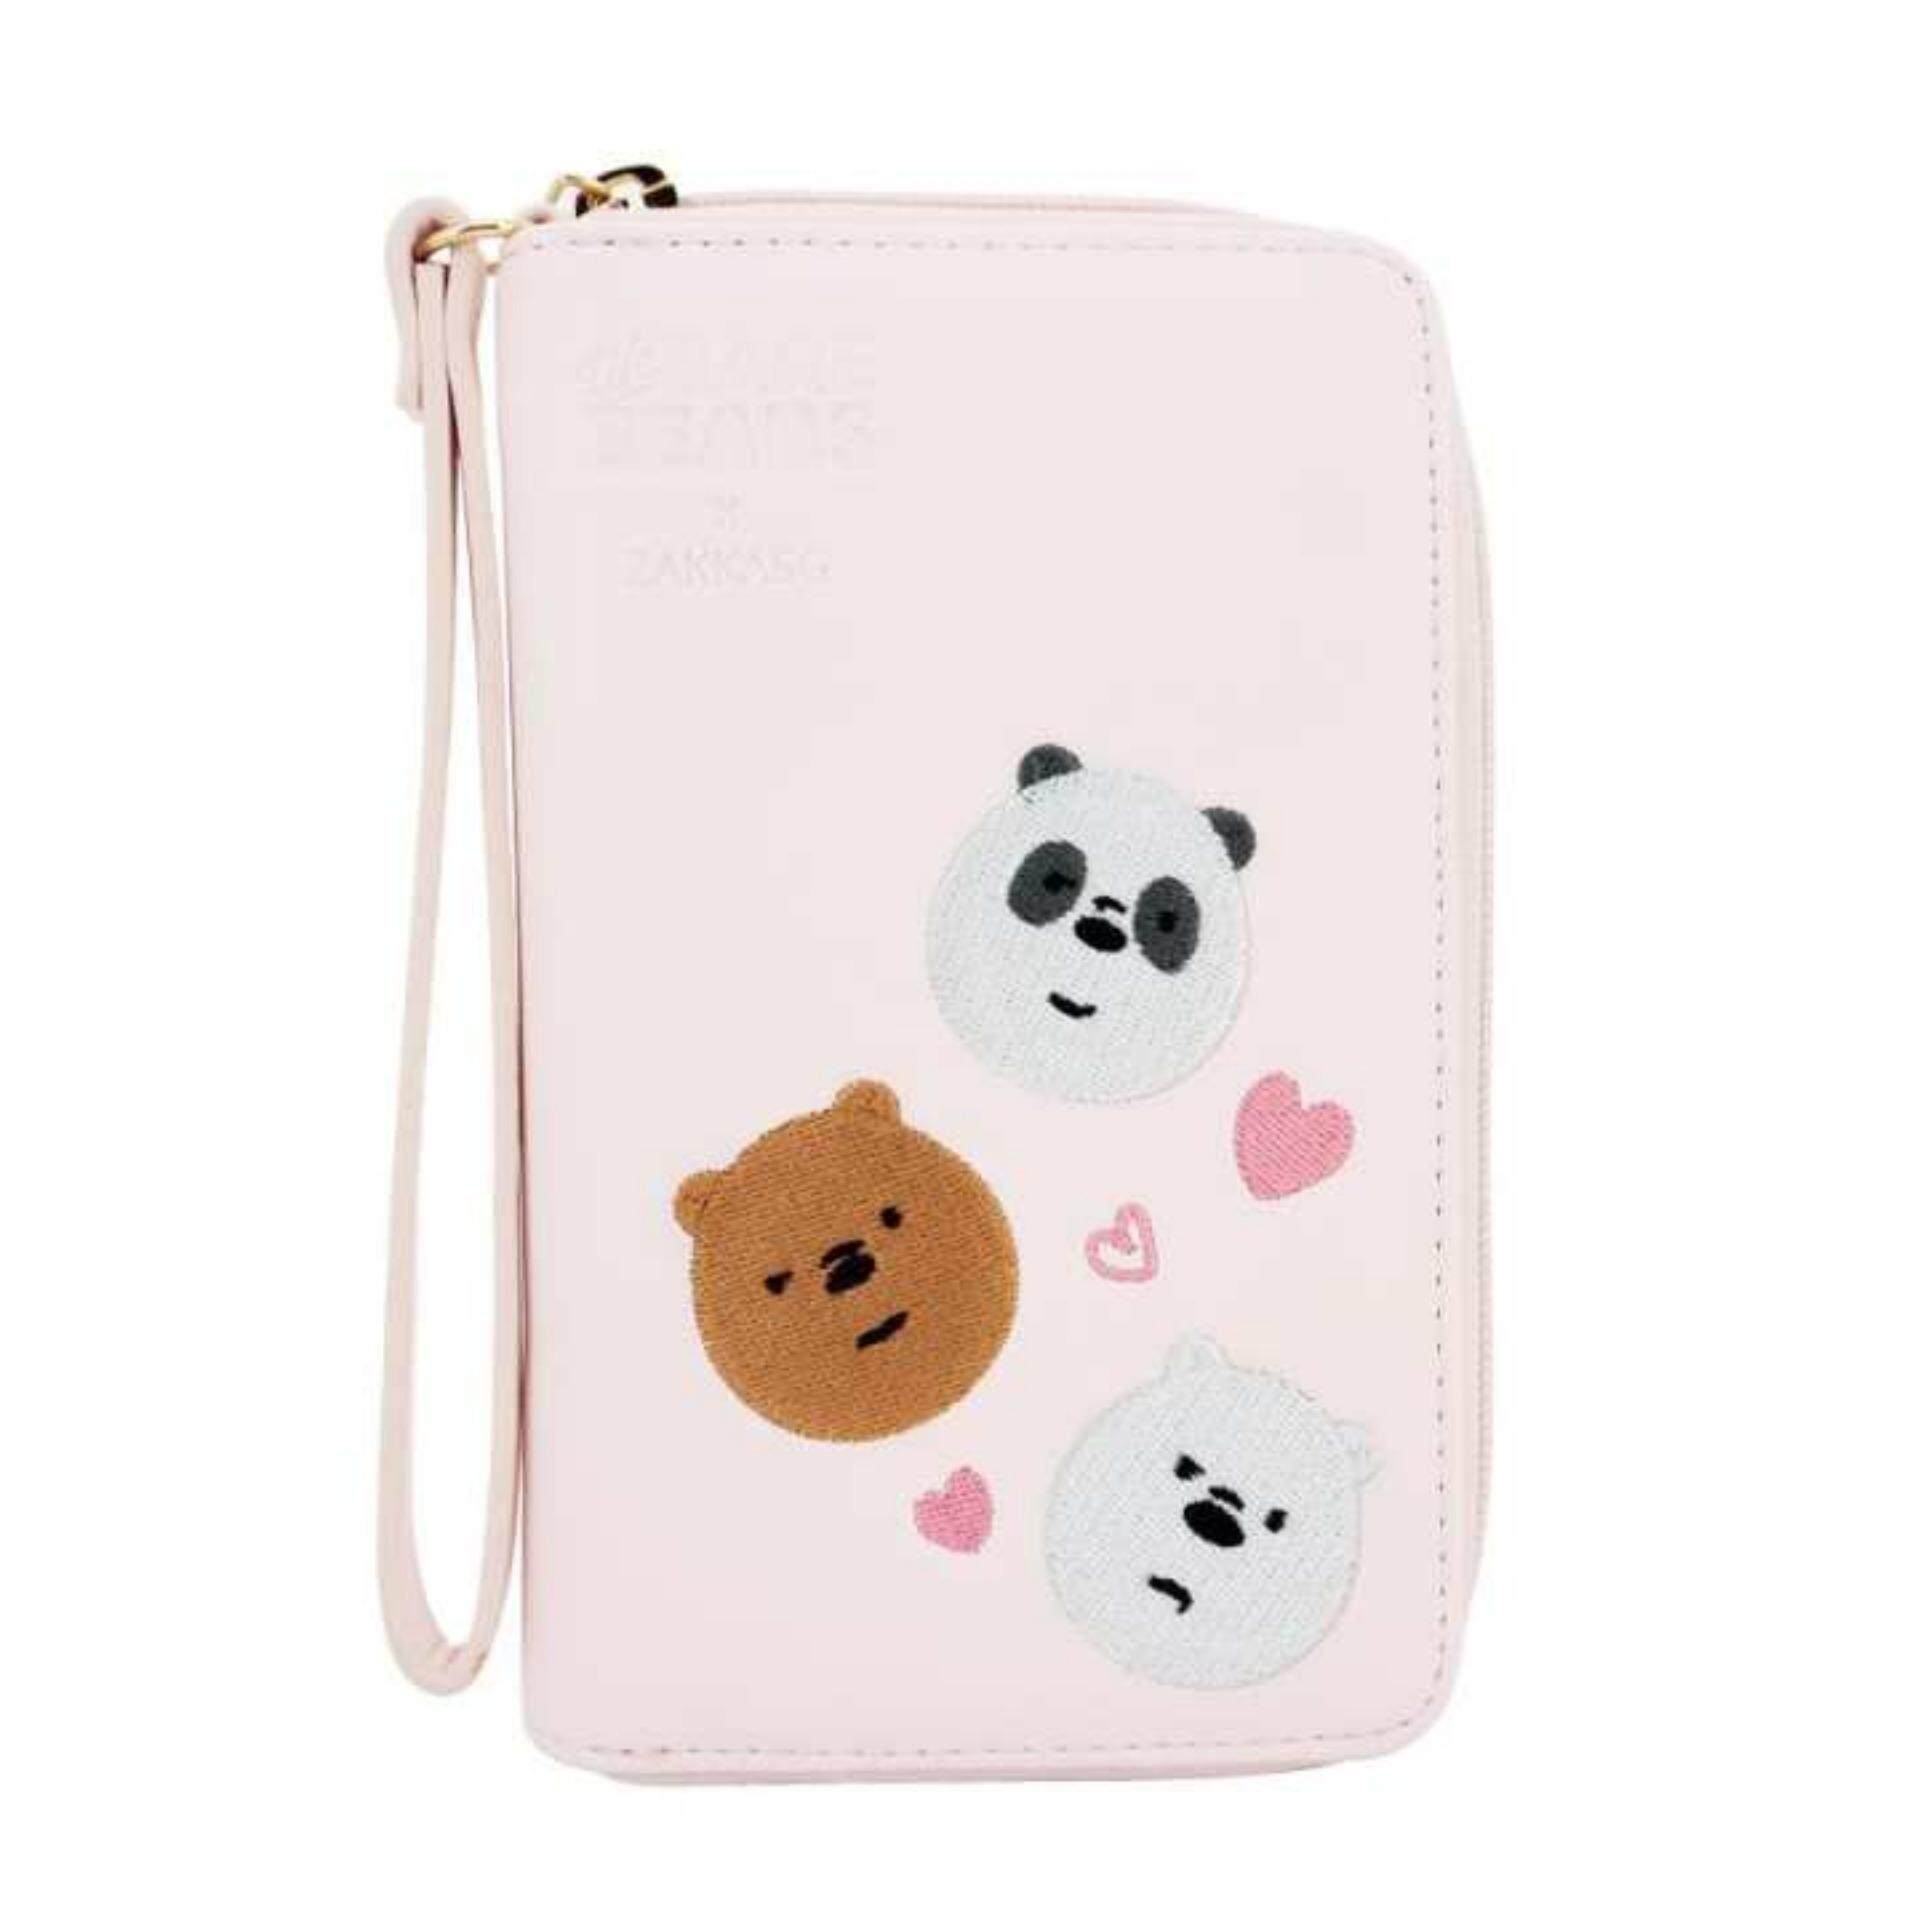 We Bare Bears Wristlet Wallet - Sakura Colour